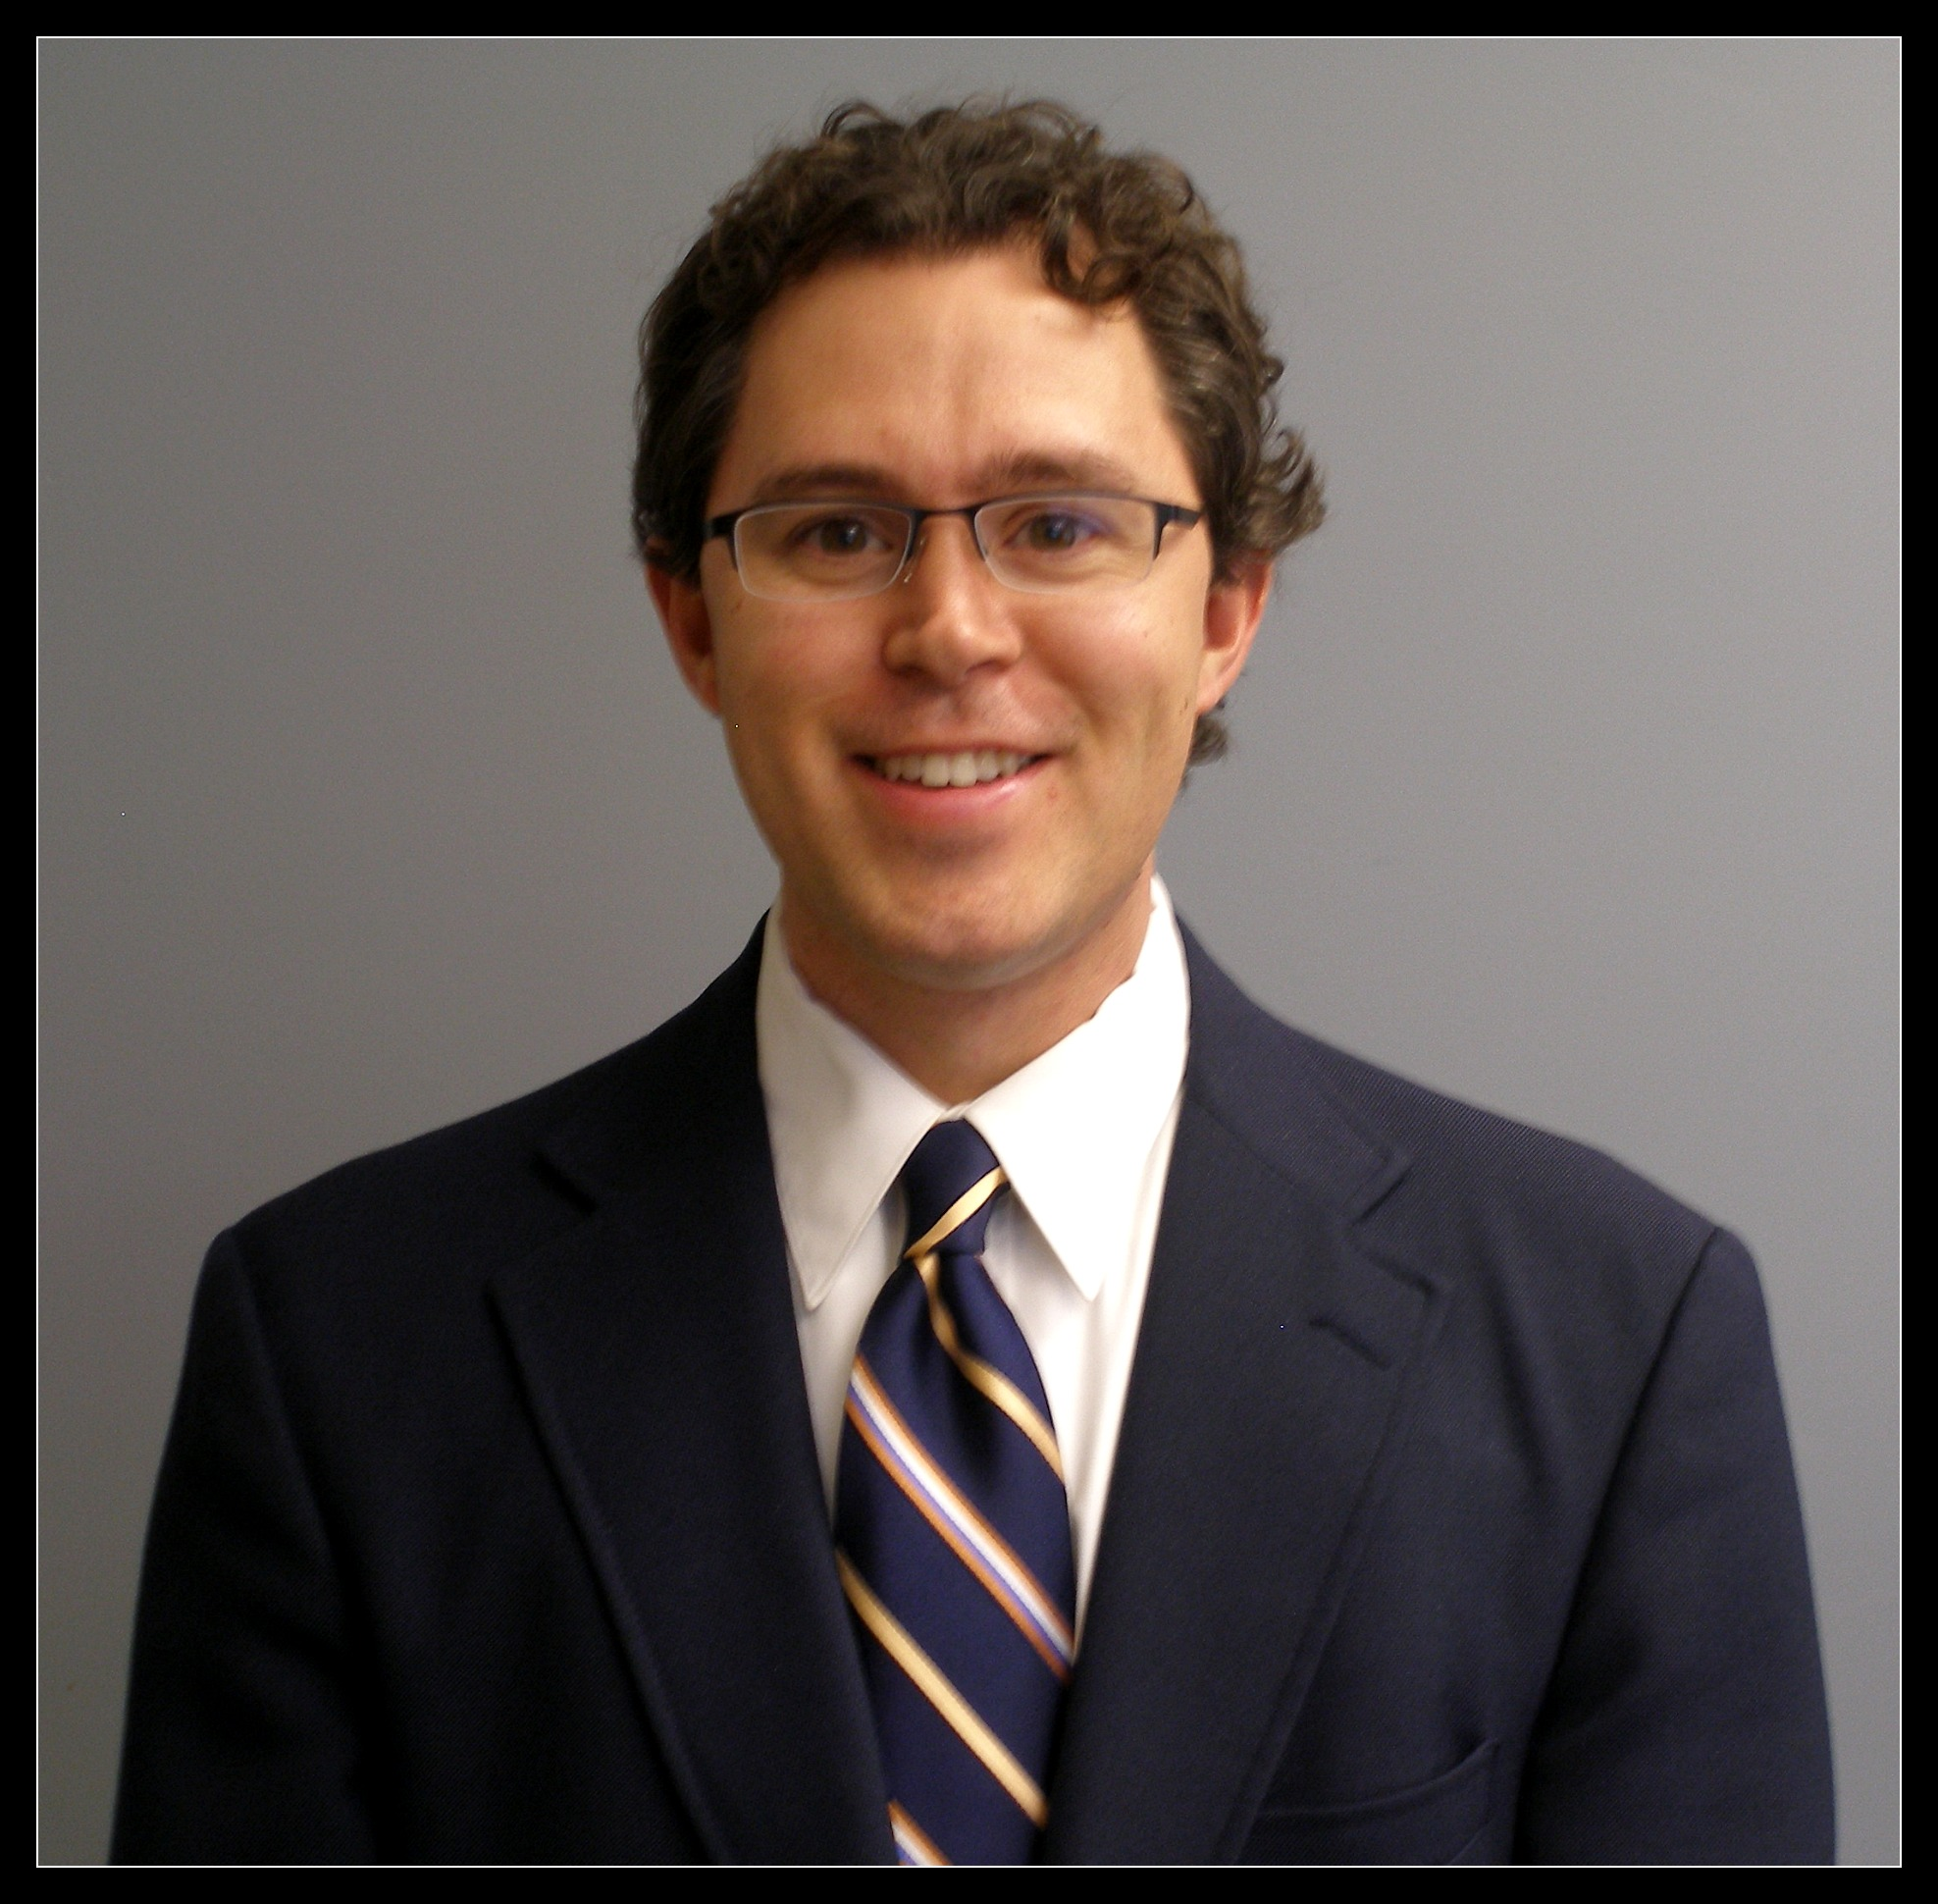 Image of Dr. Andrew Wilson of Modern Family Dentistry in Huntingdon, PA